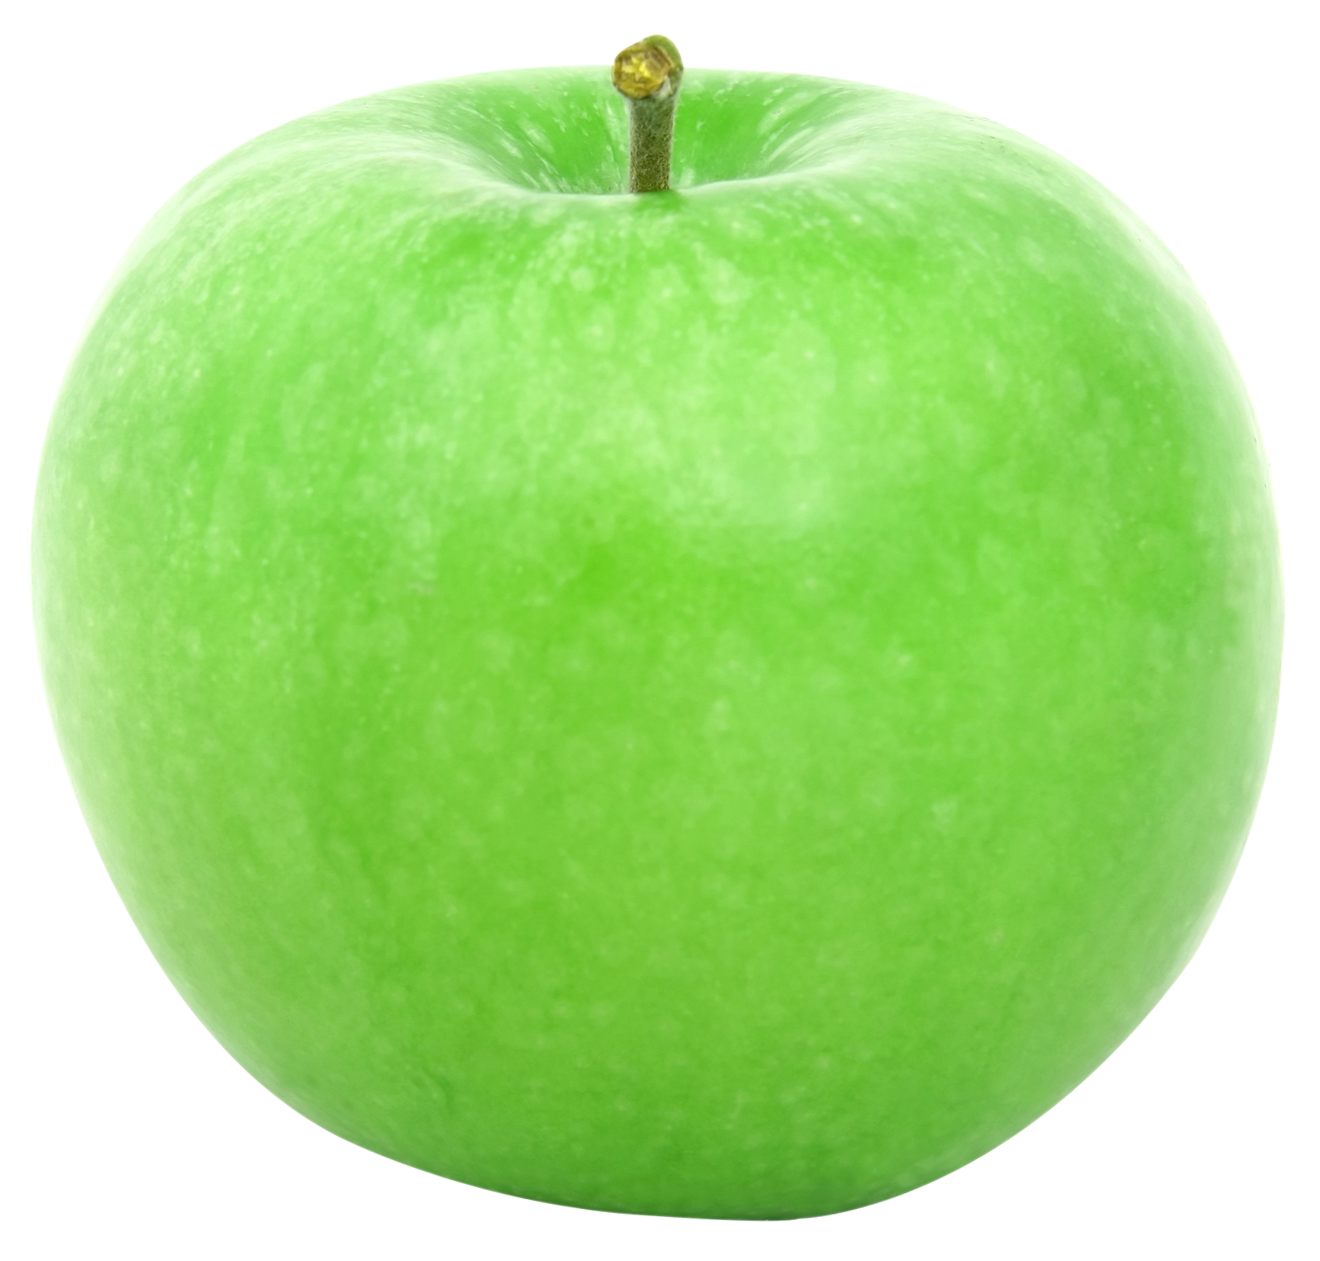 Green apple PNG - Apple PNG